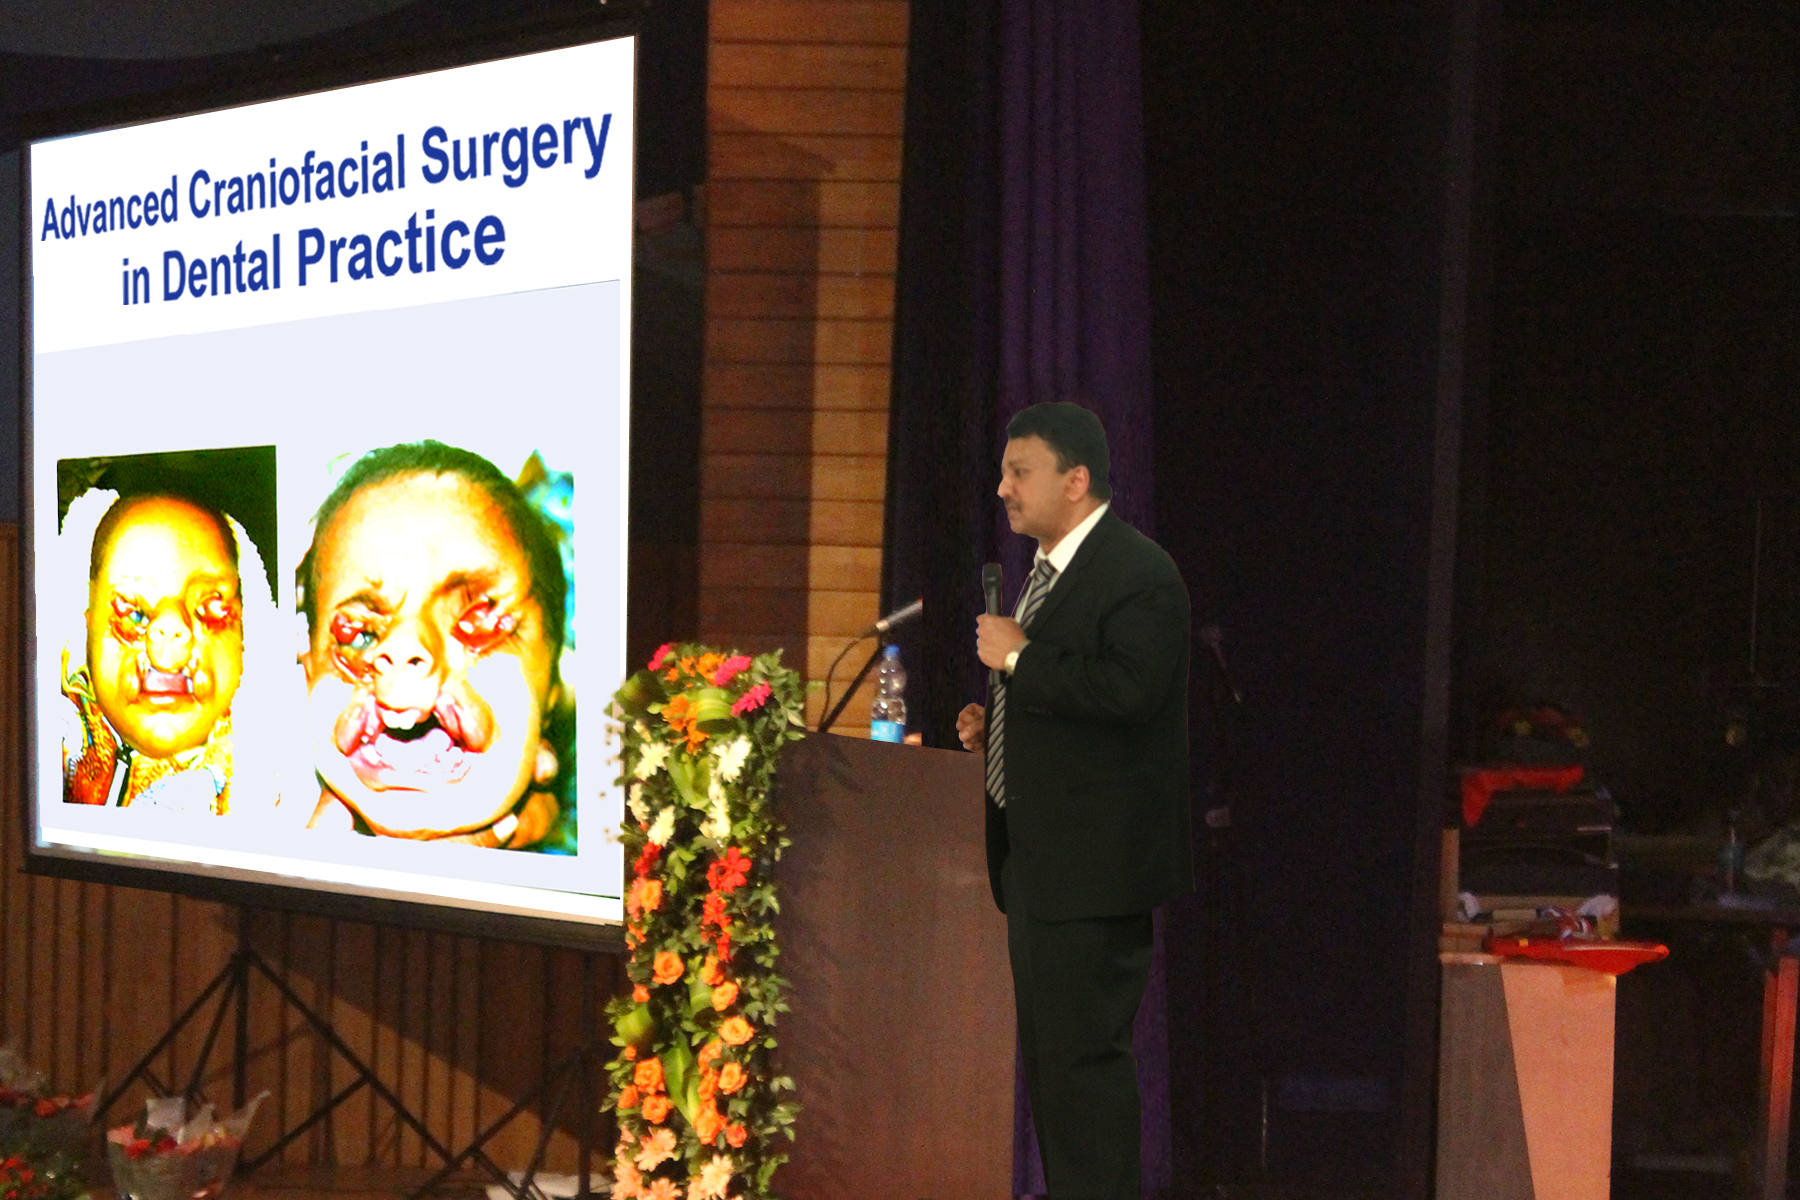 Dr Balaji delivered a lecture on Advanced Craniofacial Surgery in Dental Practice, which was very well received by the audience